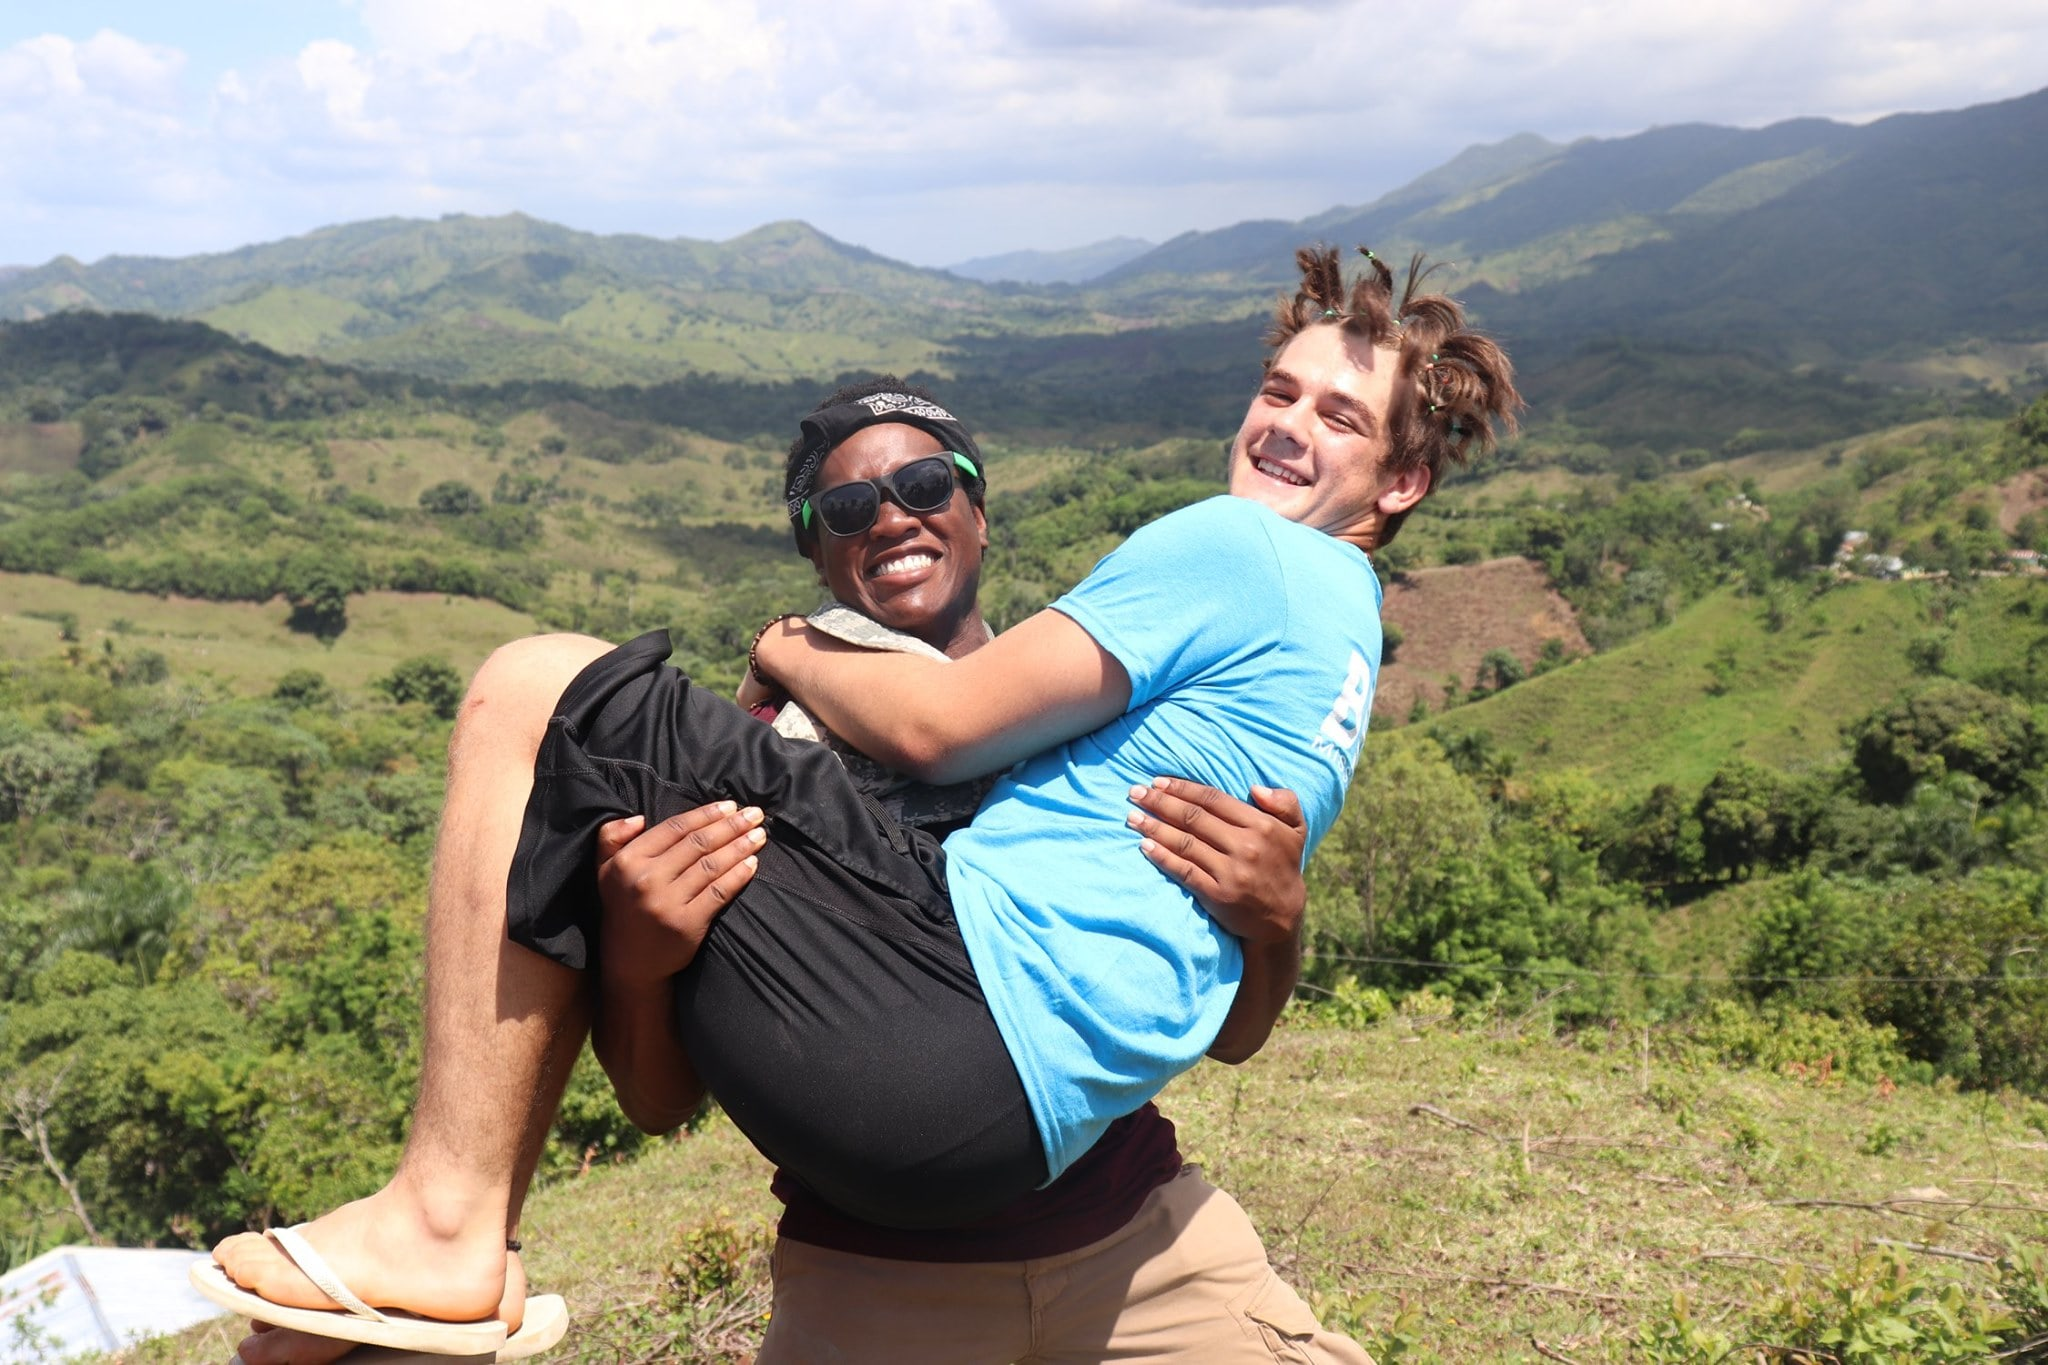 Teenager holding his friend and posing for a picture.jpg